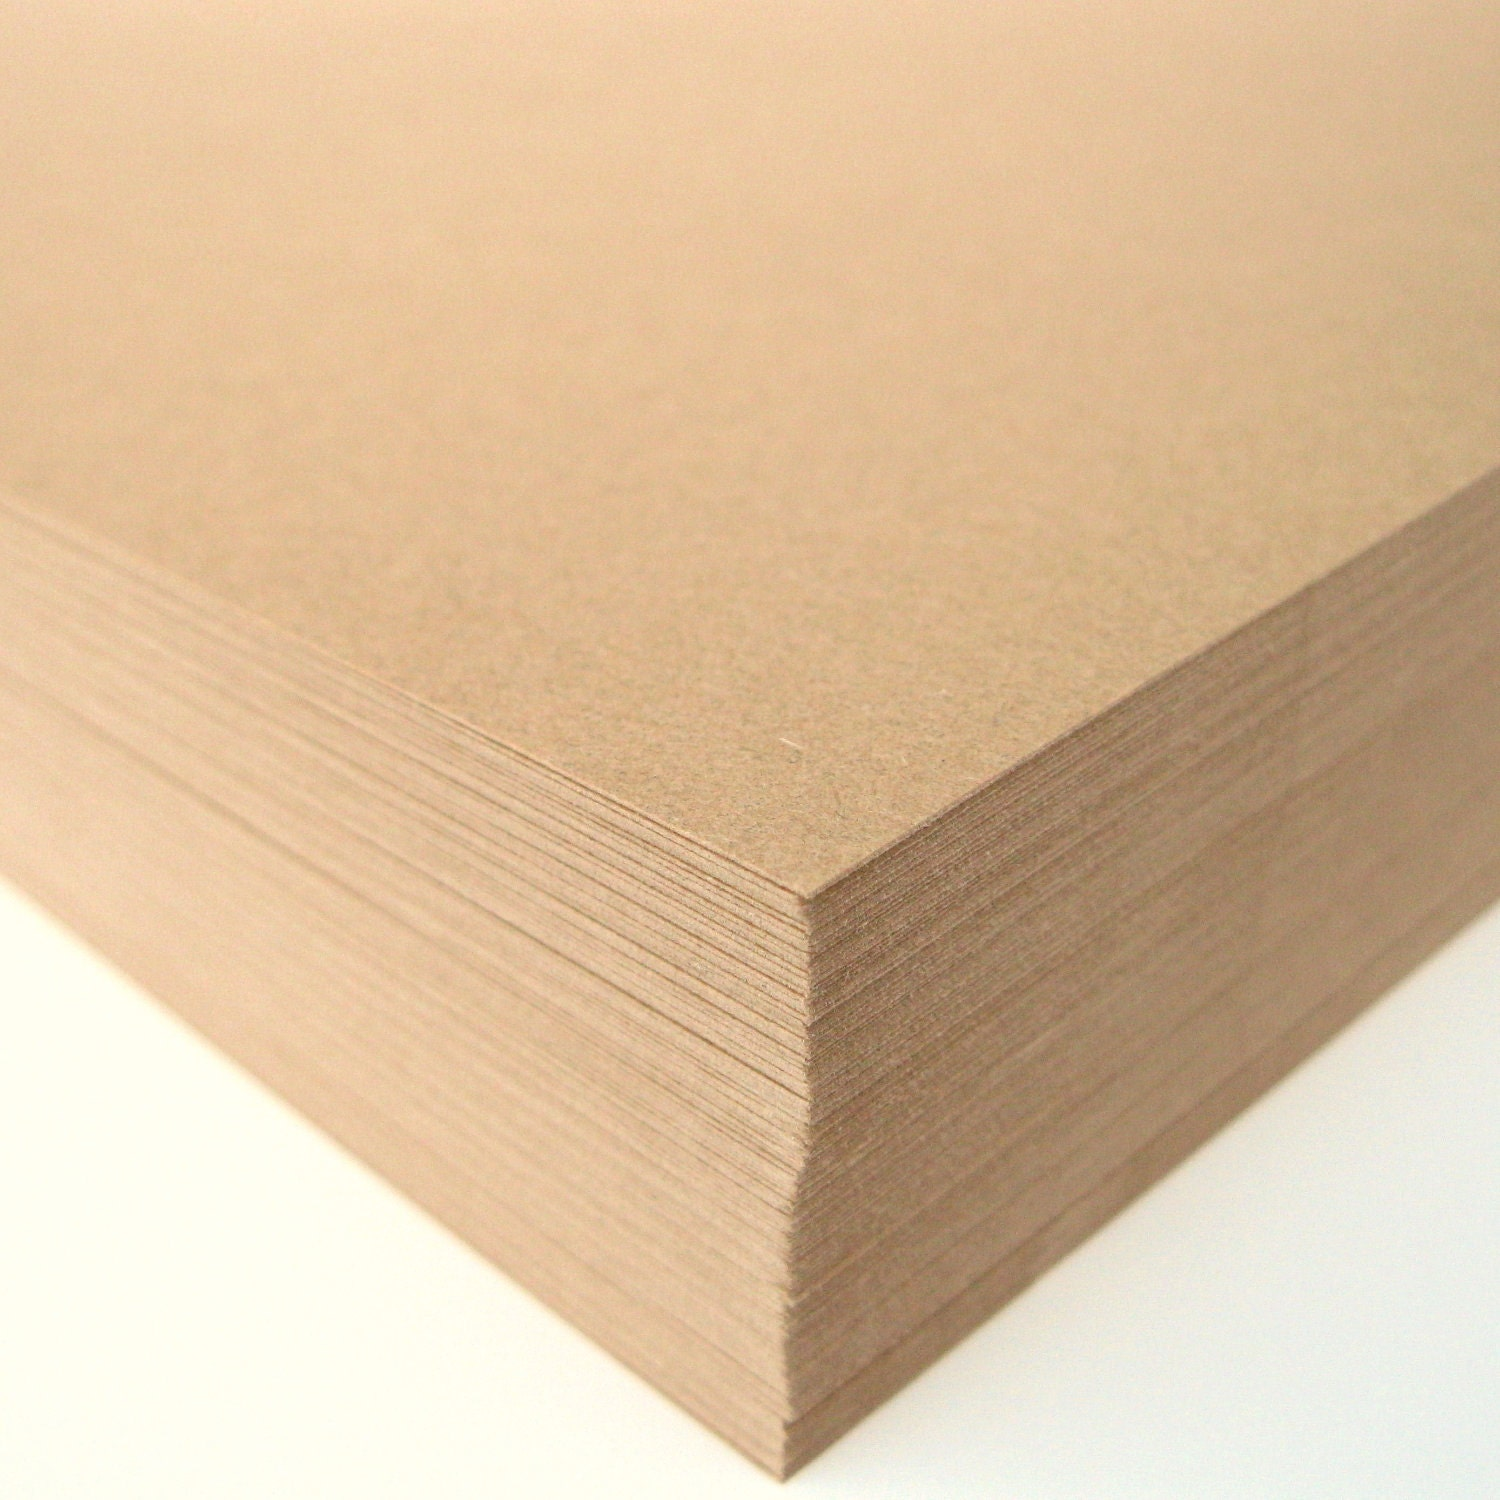 Best Paper Weight For Wedding Invitations: Kraft Cardstock 30 Full Sheets Wedding Invitation By